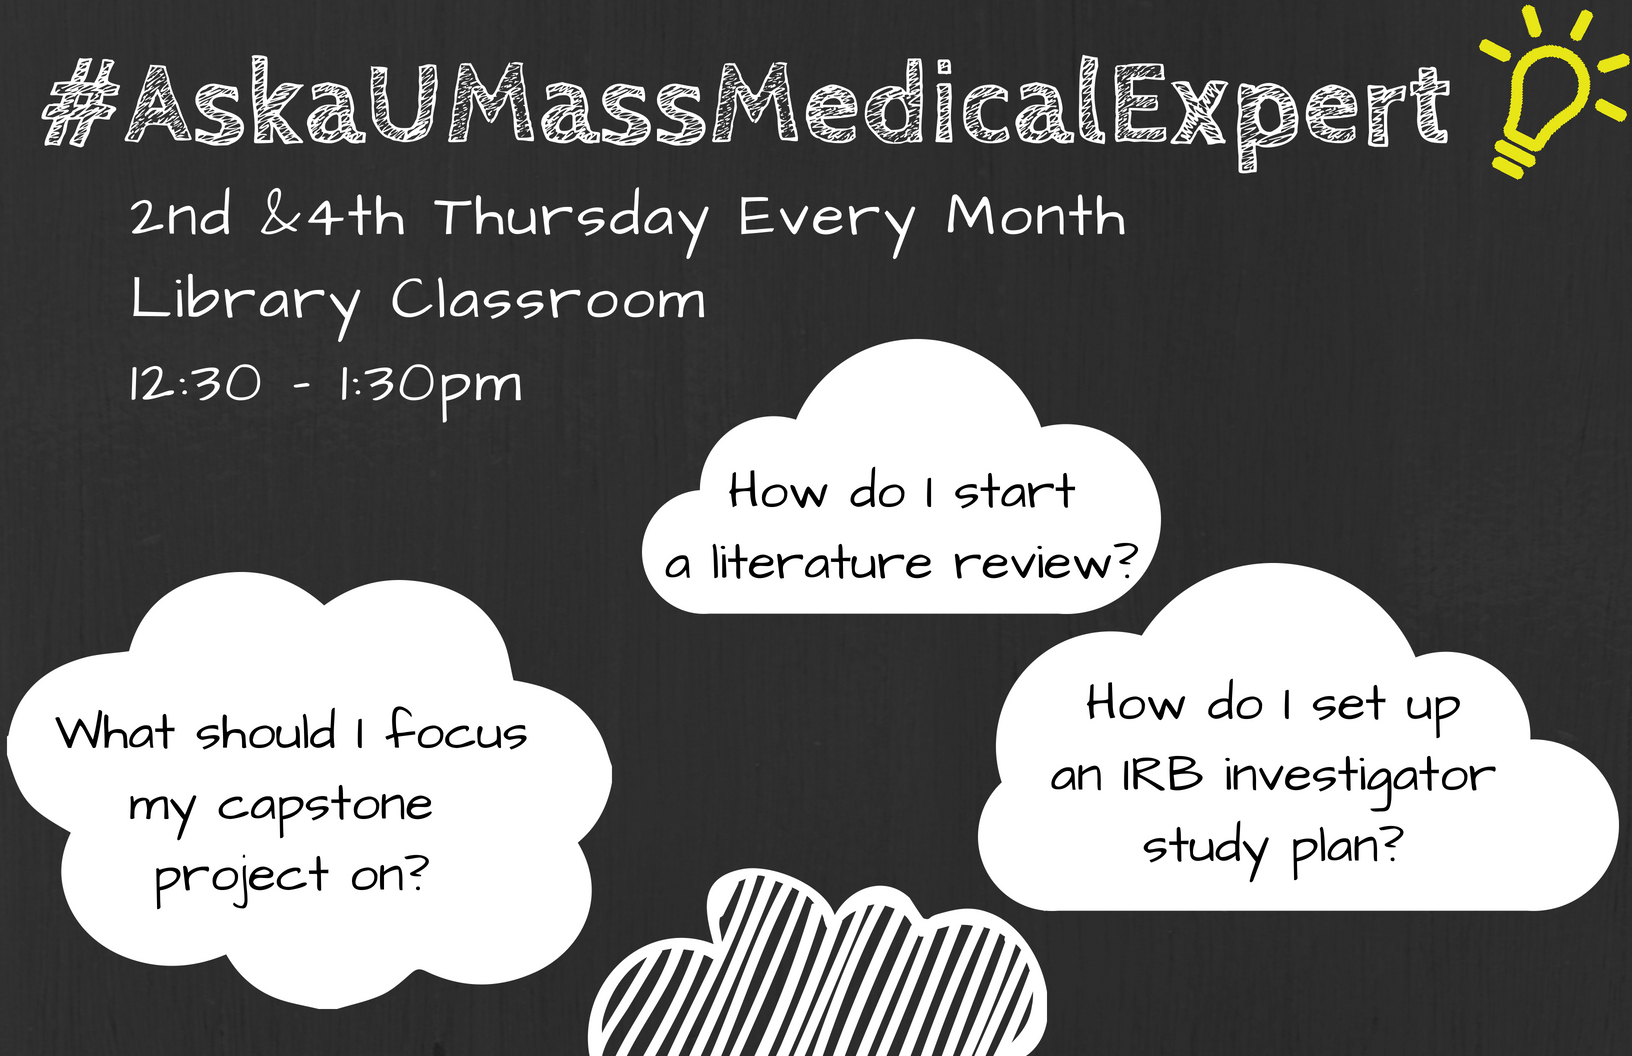 Ask a UMass Medical Expert, 2nd and 4th Thursday every month, Library Classroom, 12:30 - 1:30 pm. Possible questions that can be answered: What should I focus my capstone project on? How do I start a literature review? How do I set up an IRB investigator study plan?